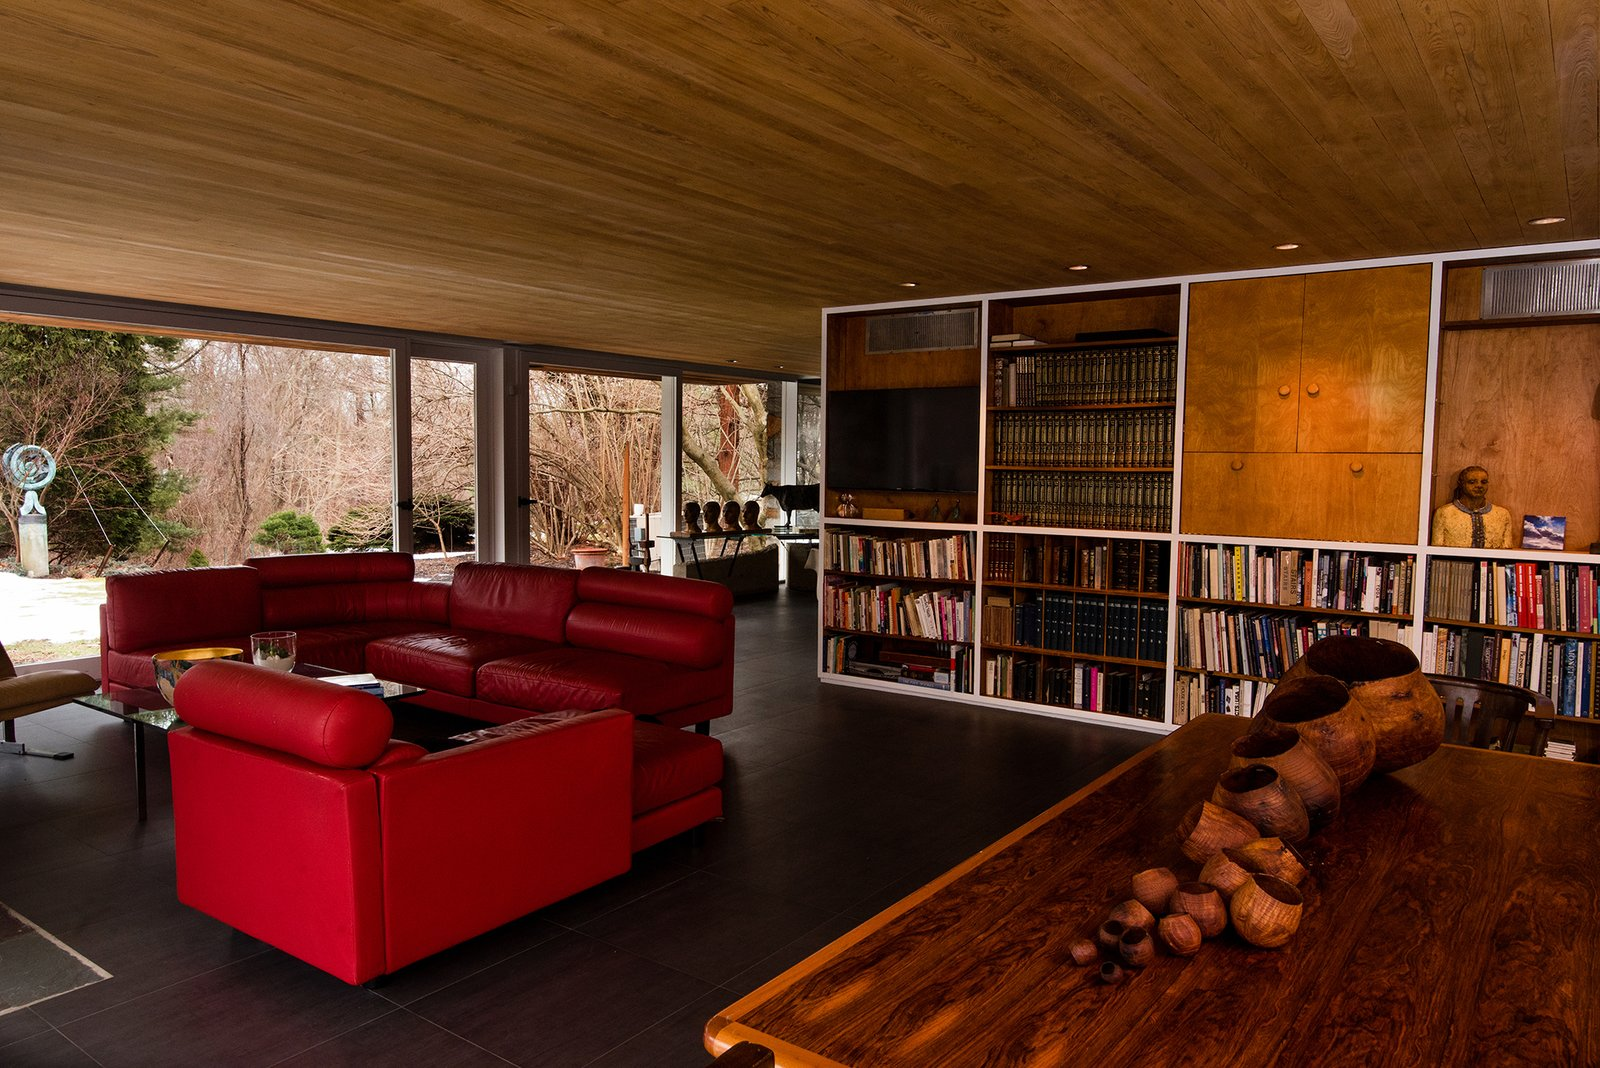 Living Room, Coffee Tables, Slate Floor, Sofa, Recessed Lighting, Chair, and Table The open plan living room features built-in bookshelves.  Photo 3 of 13 in Snag This Midcentury Gem by Marcel Breuer That's Listed For $999K